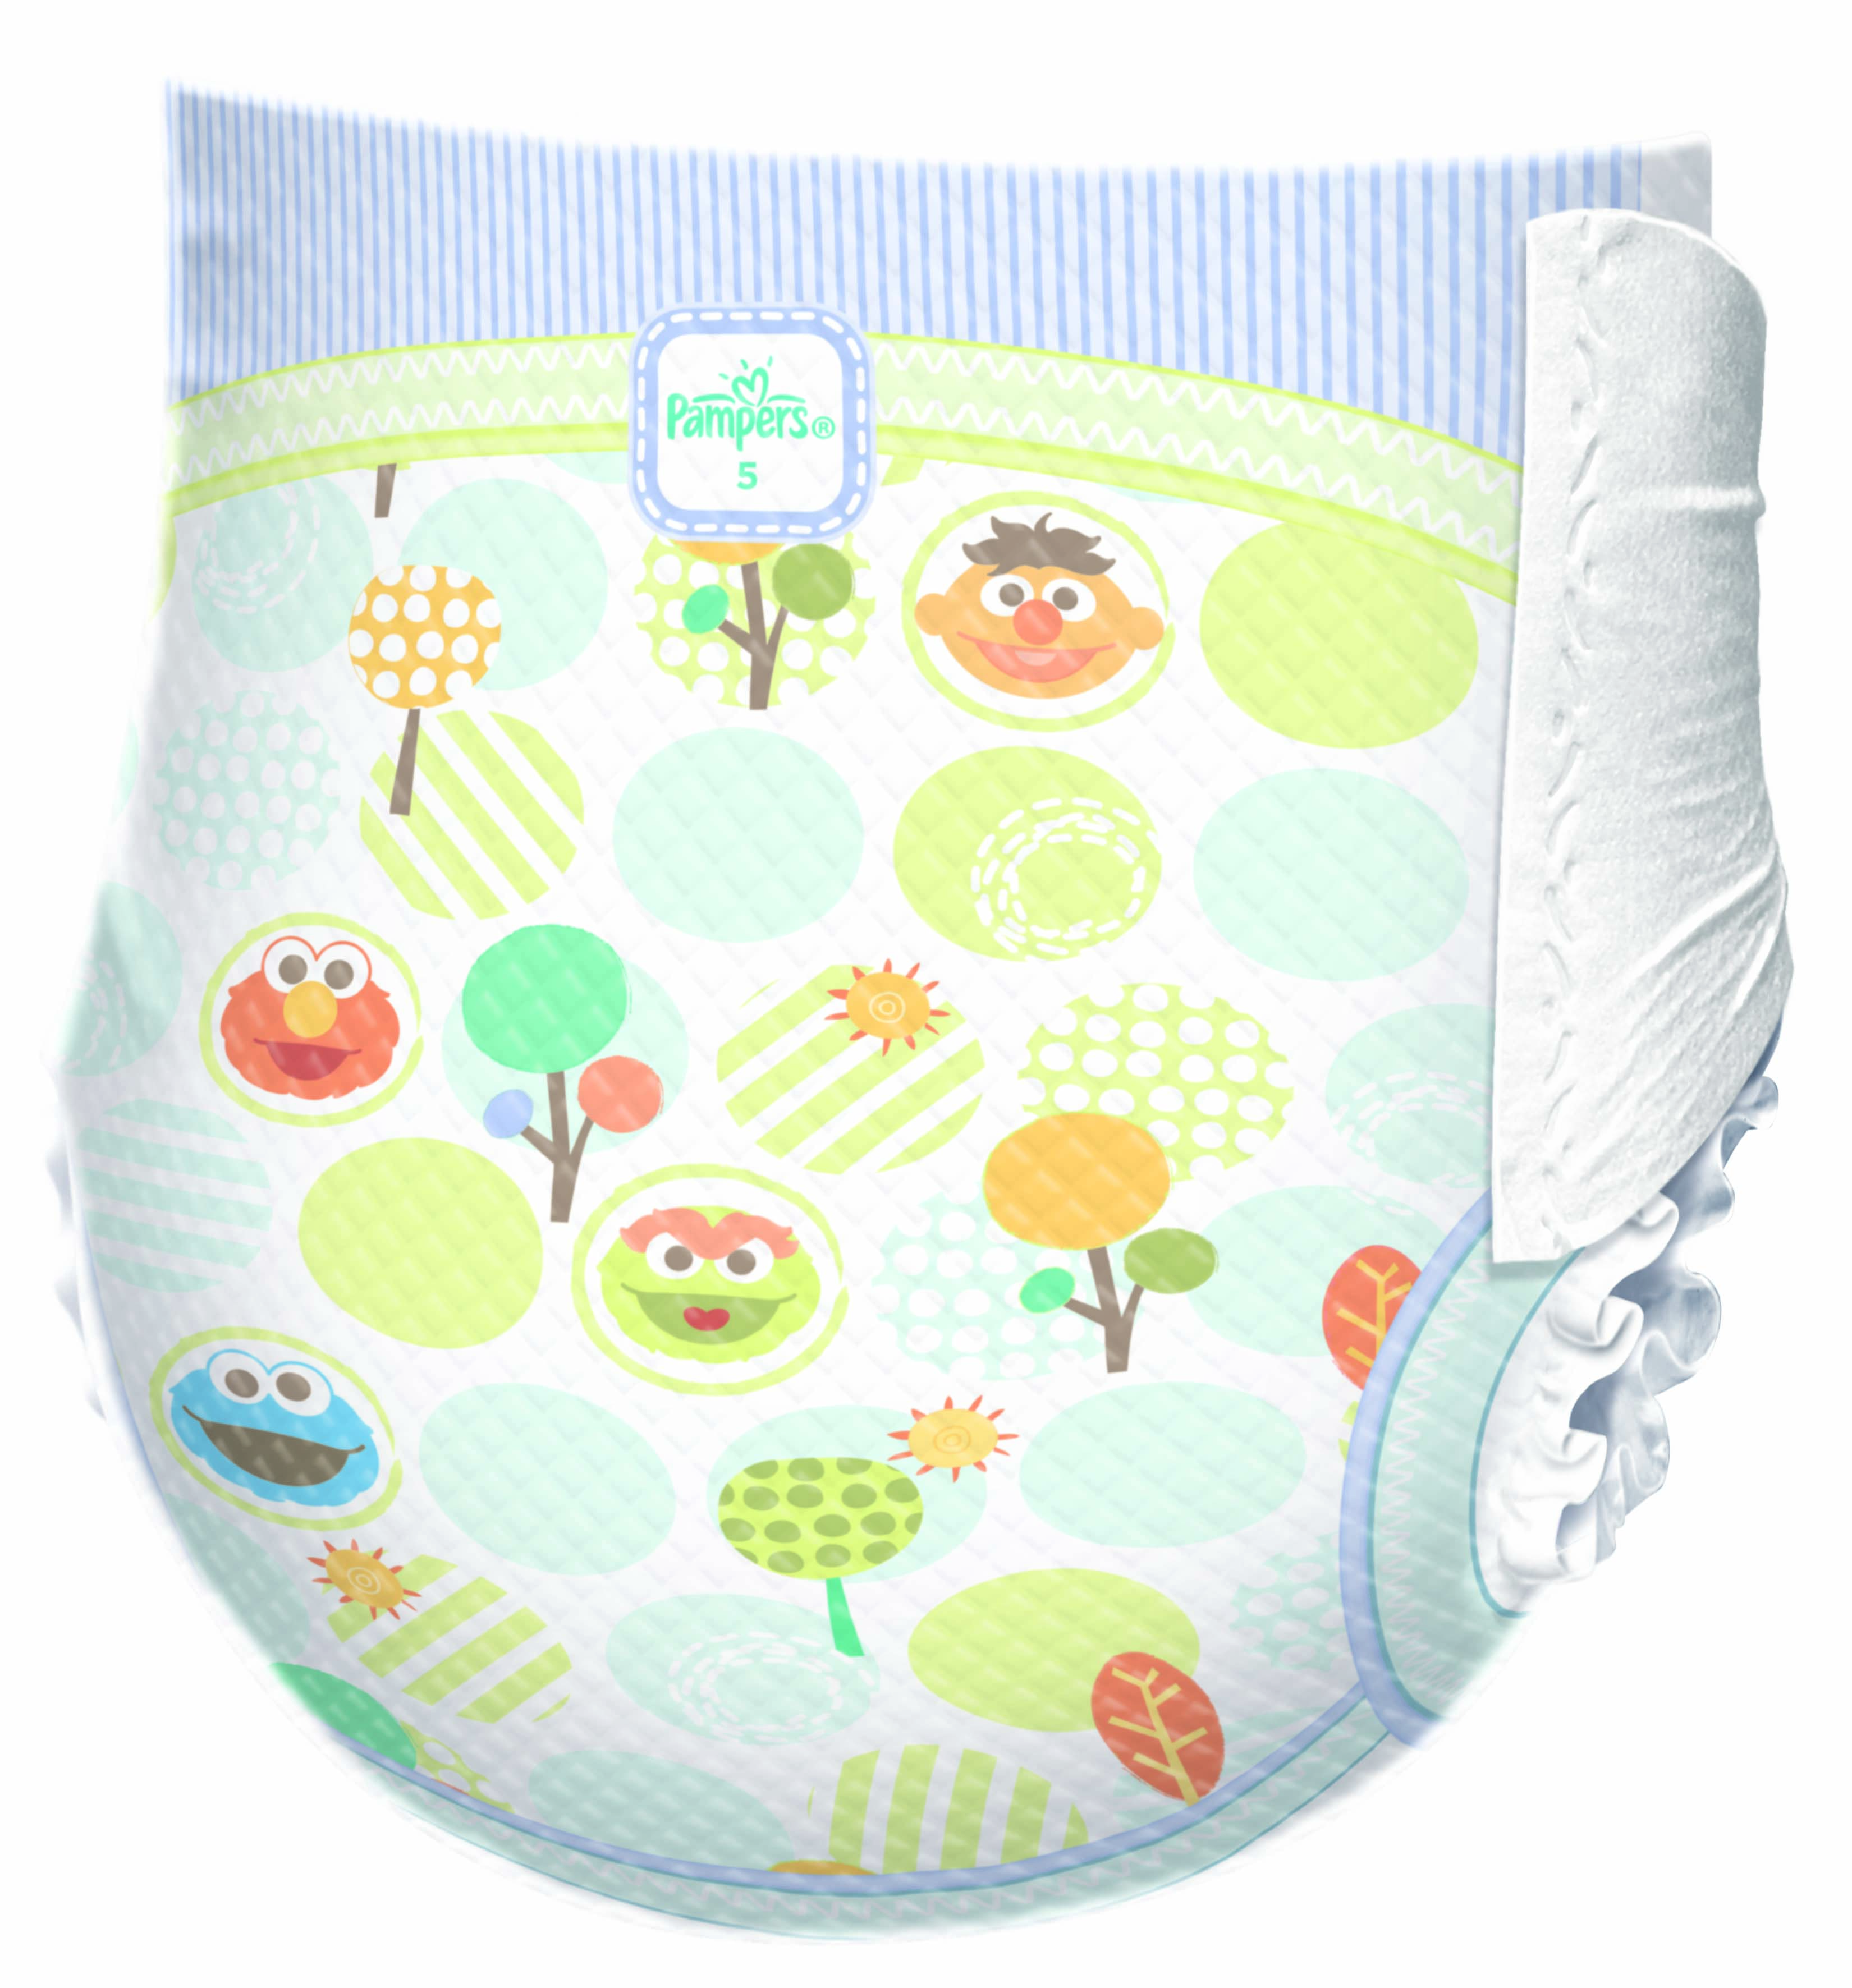 Disposable Diapers Images